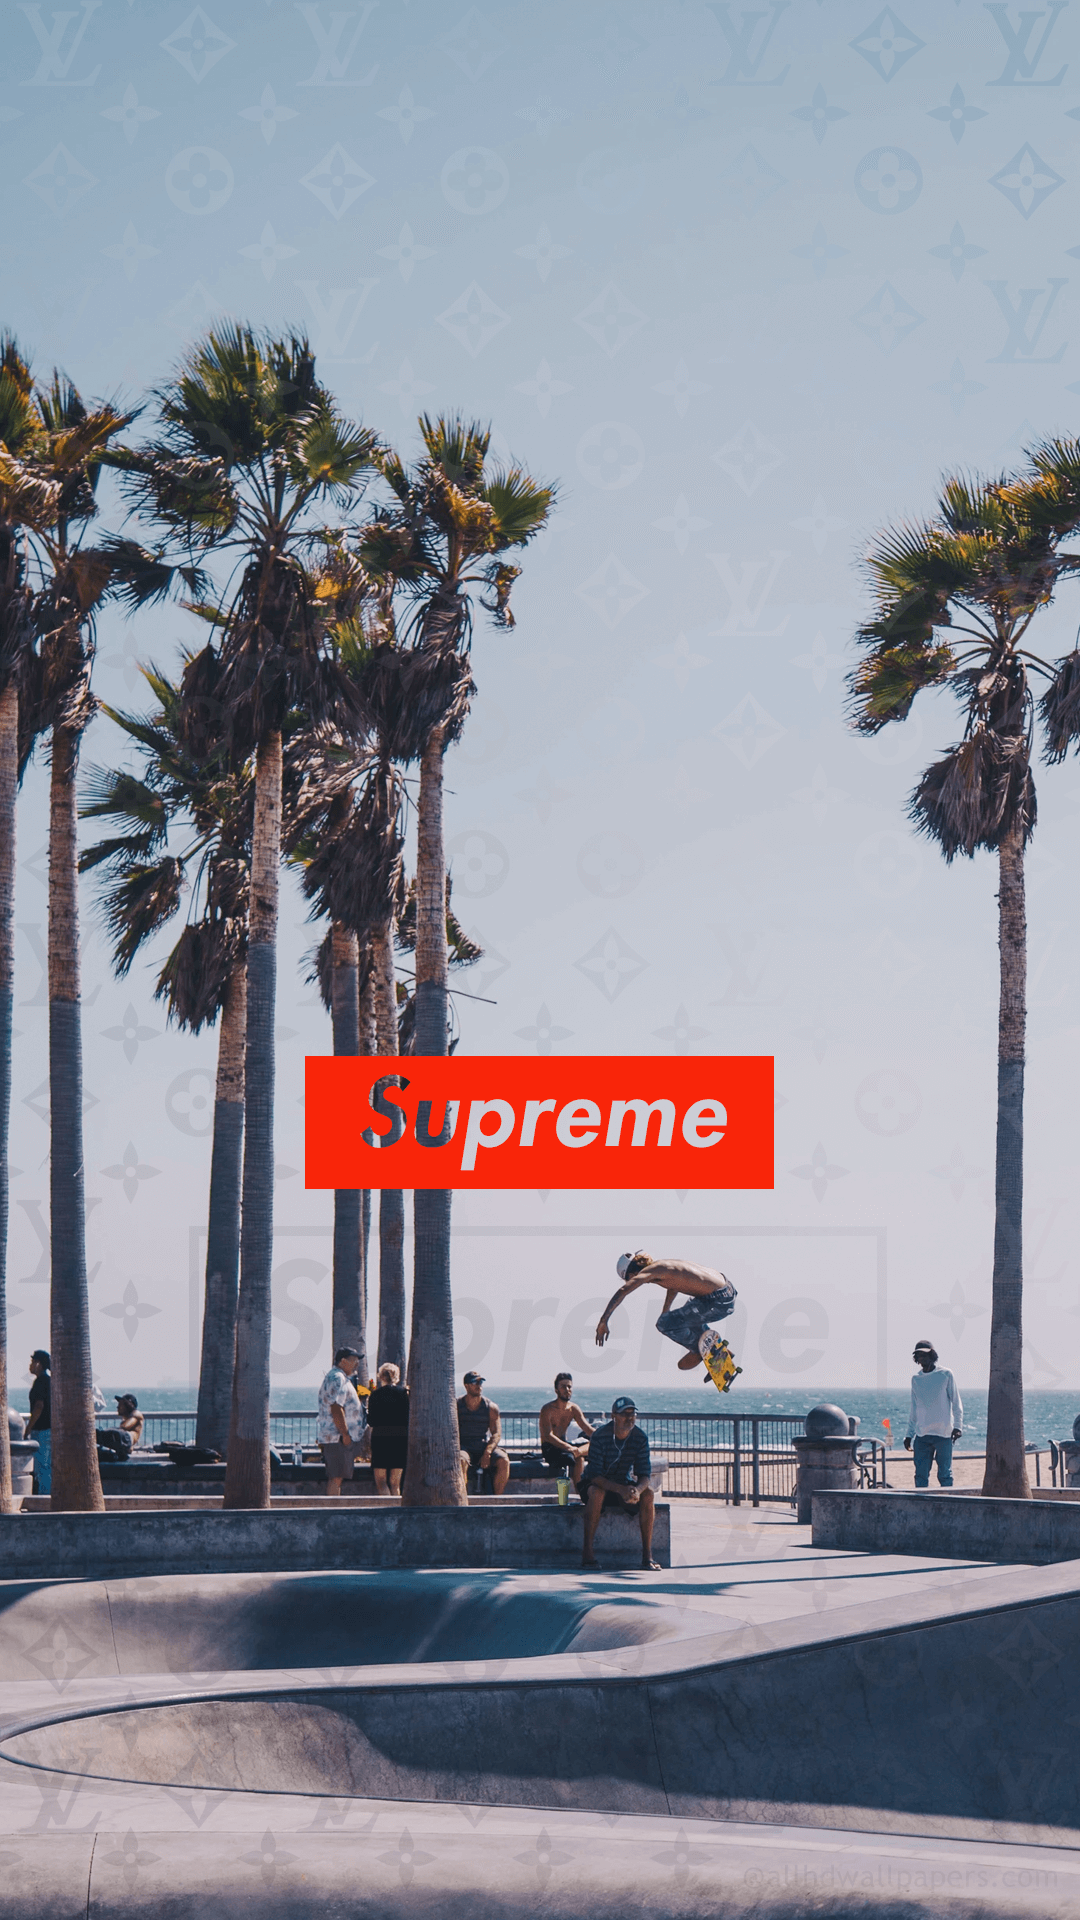 Skateboard supreme wallpaper